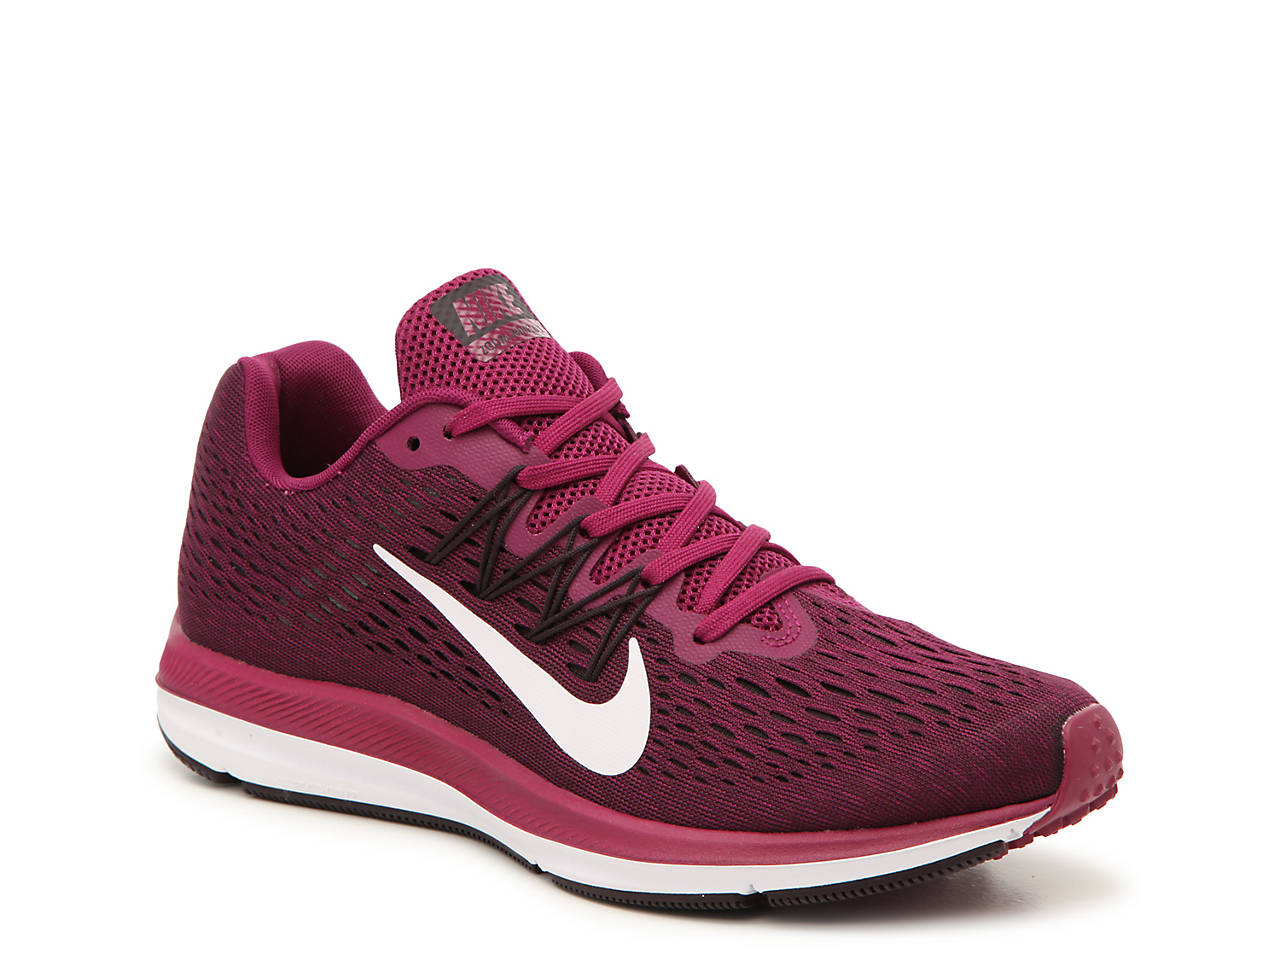 brand new 8b329 c1dae Nike. Zoom Winflo 5 Running Shoe - Women s